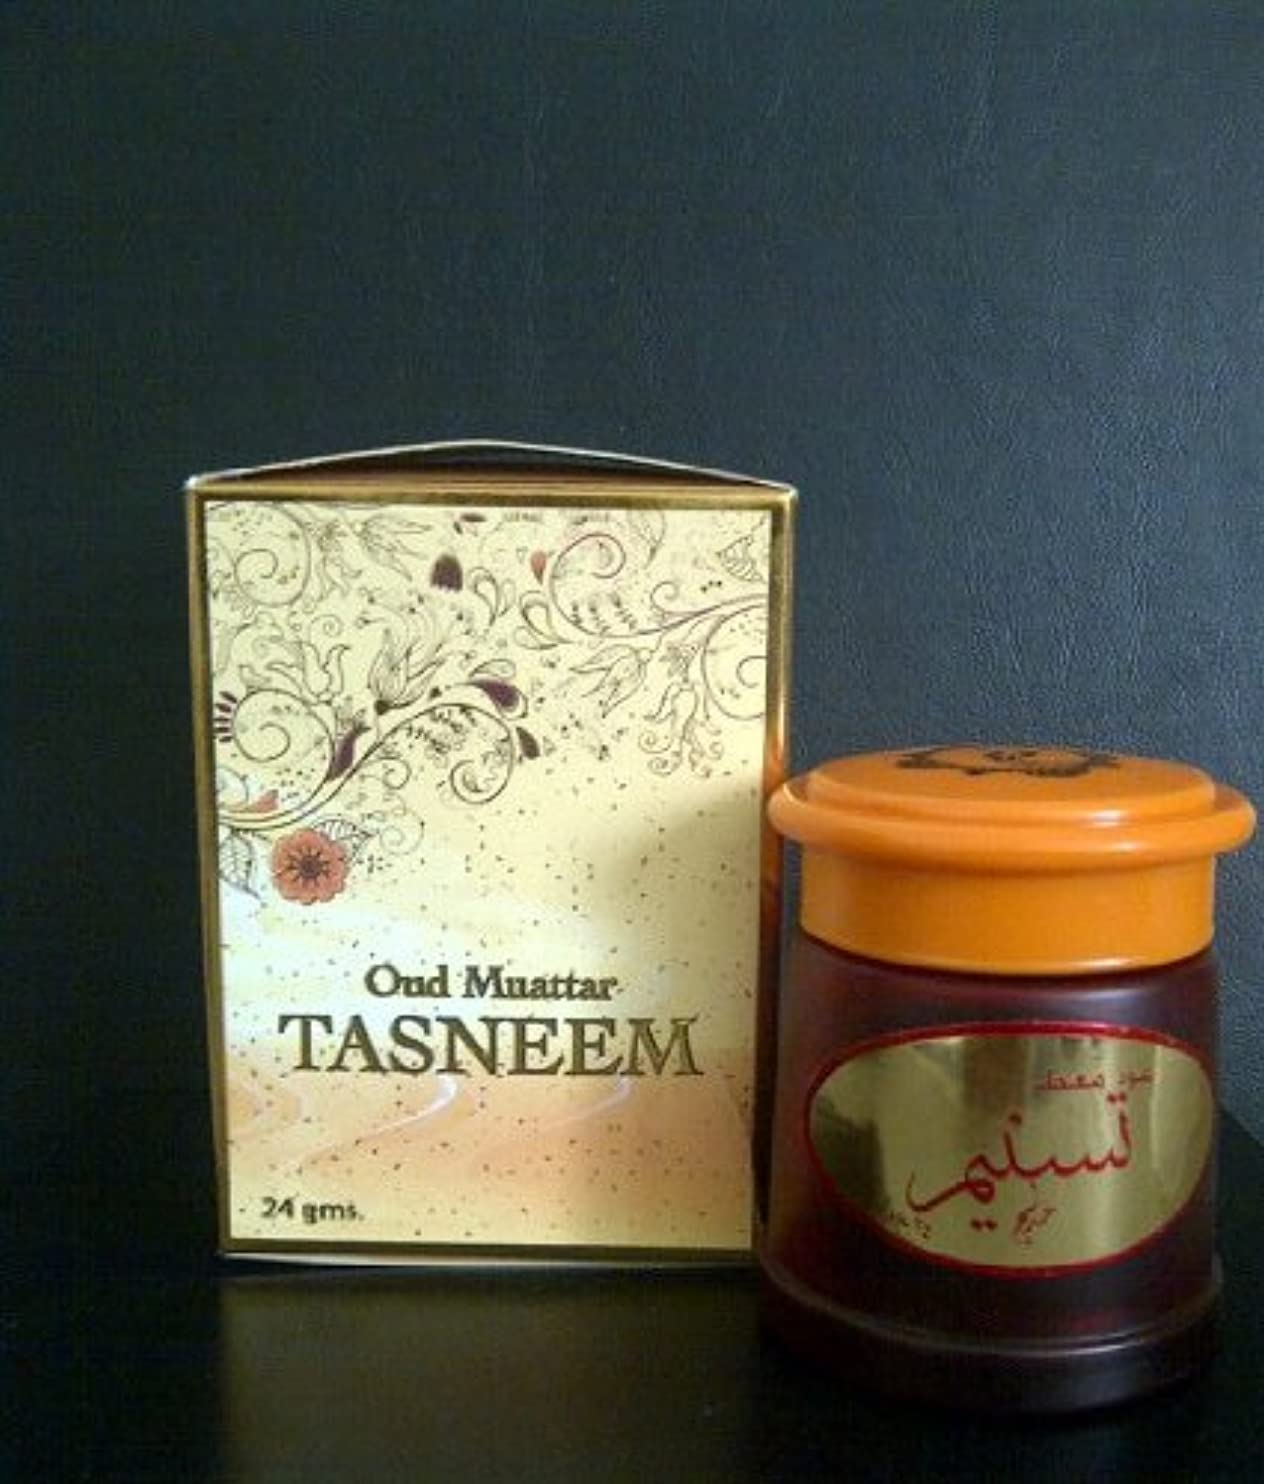 航空便ハブブ尊敬するOud Muattar Tasneem BakhoorムスクAmber Fragrance Burner Khadlaj AIR FRESHNER 24 g